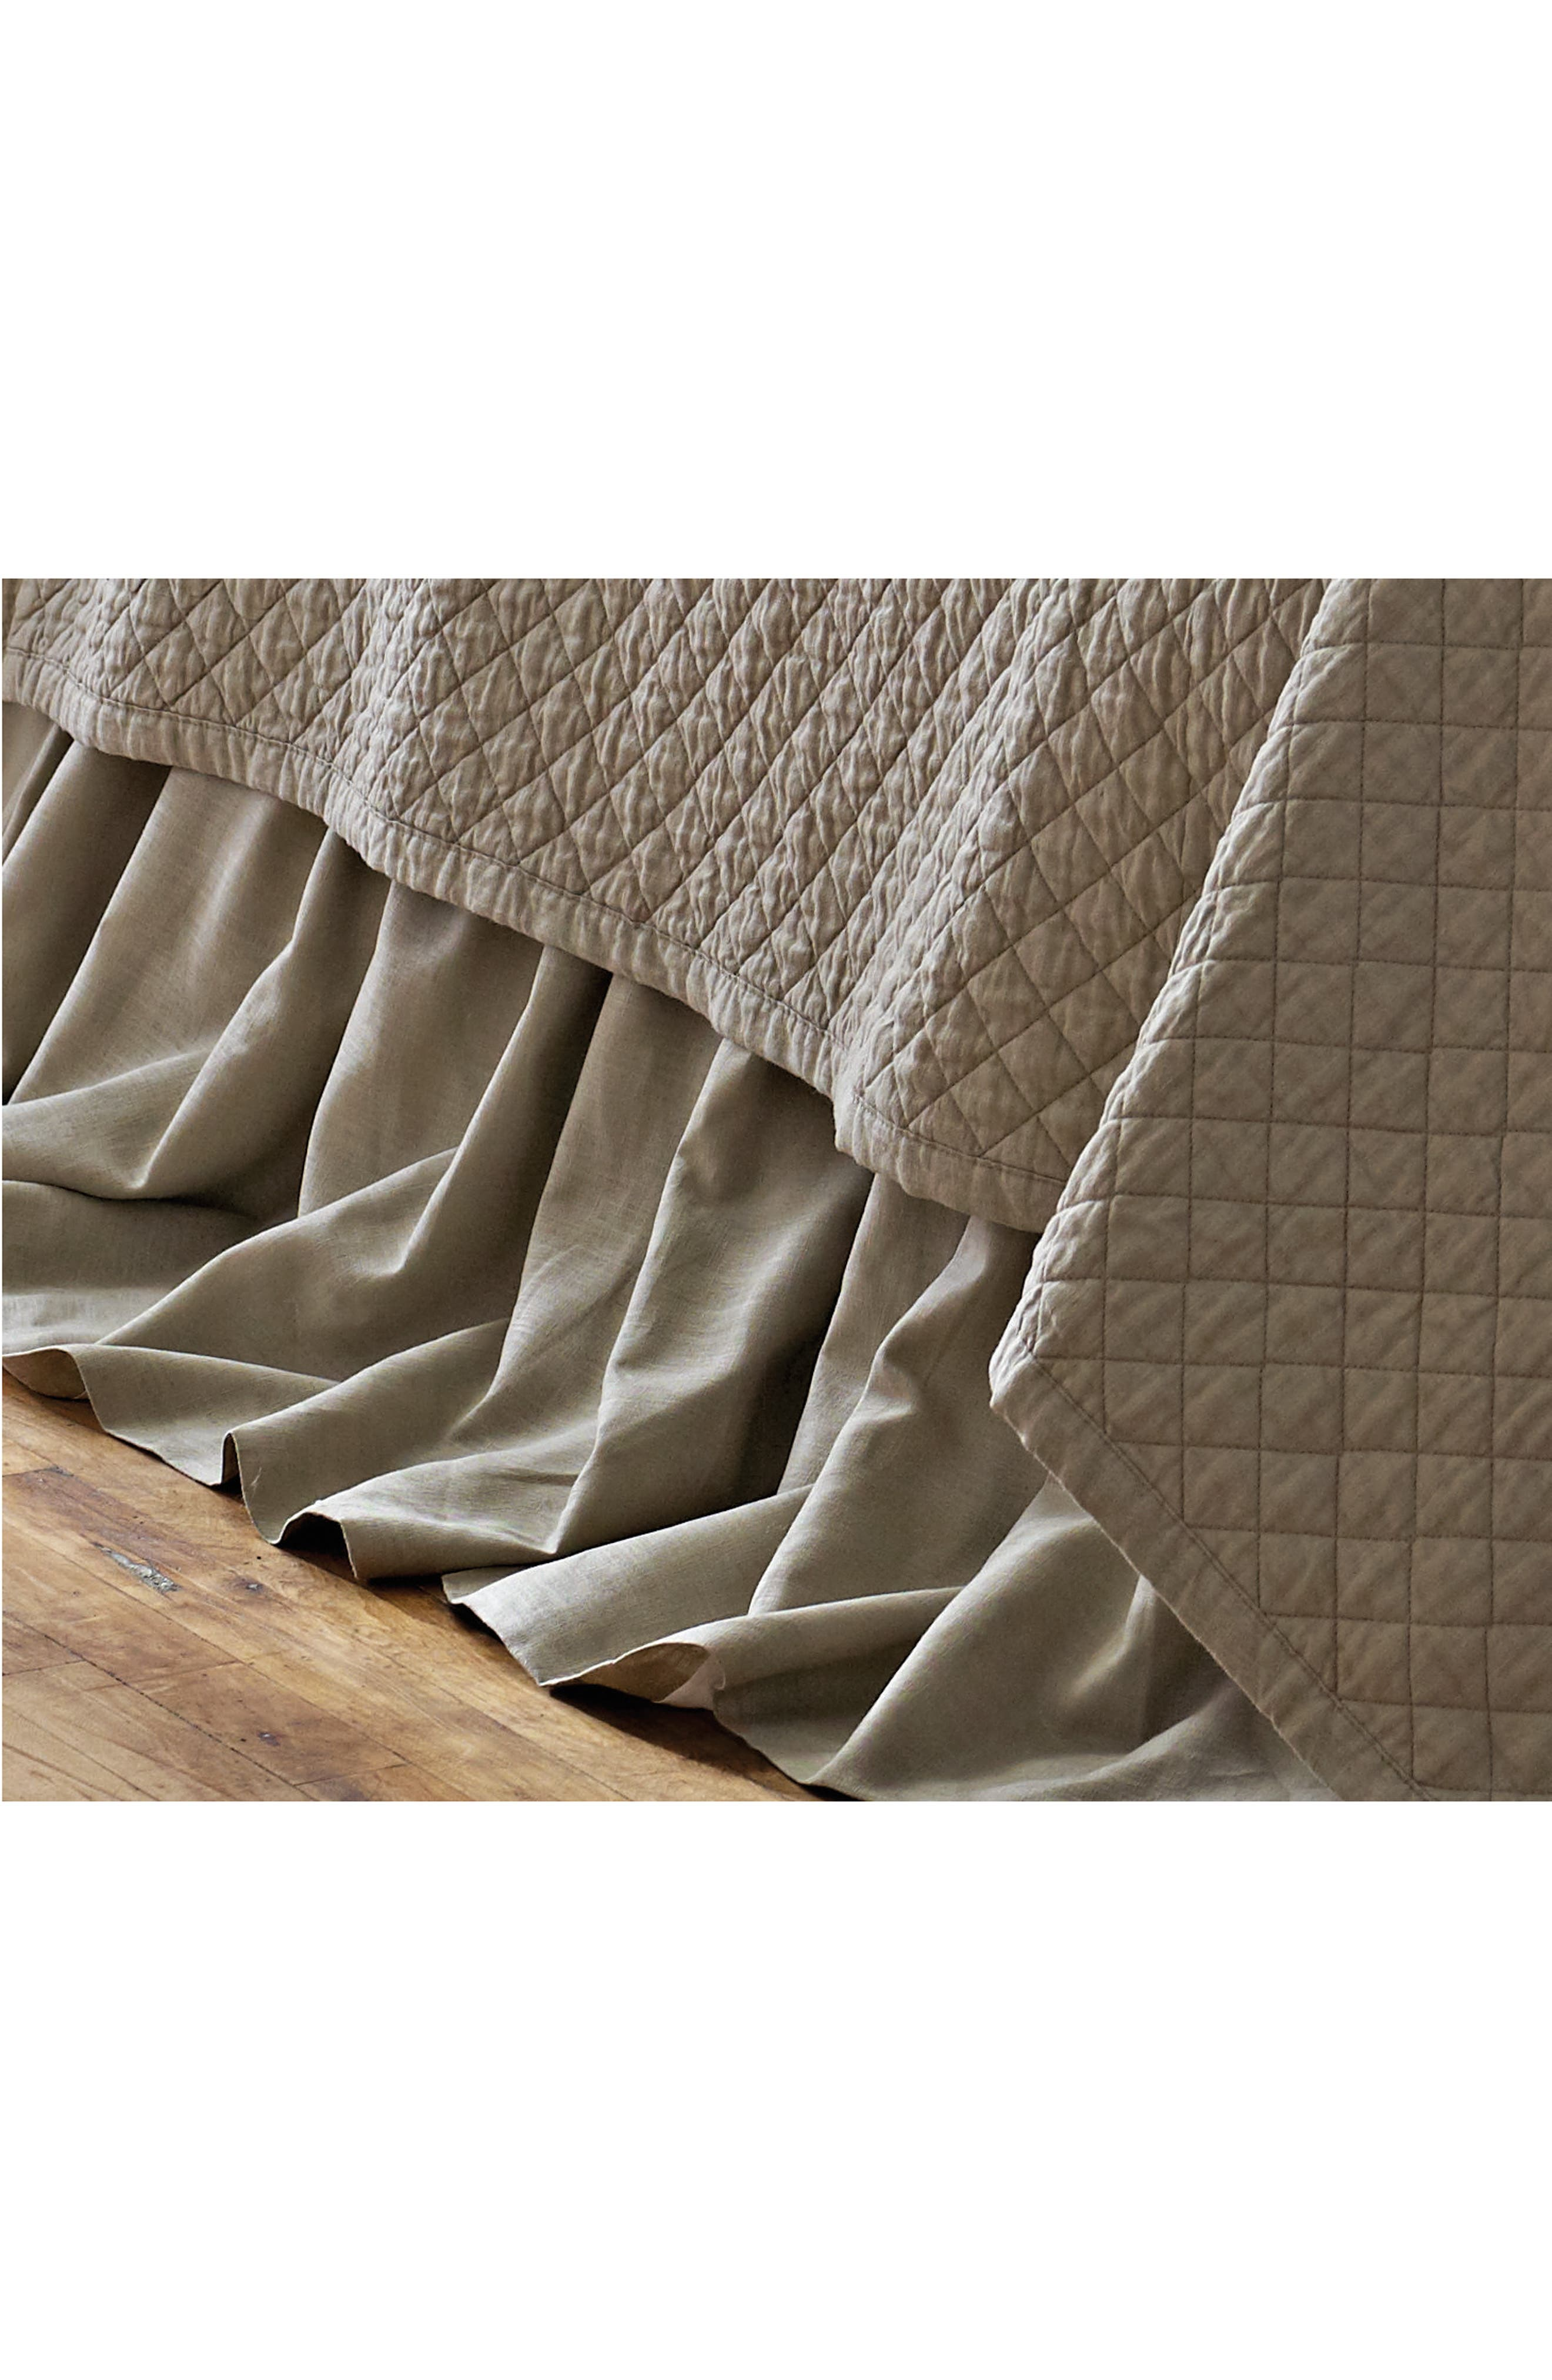 Emily Gathered Linen Bed Skirt,                         Main,                         color, STONE